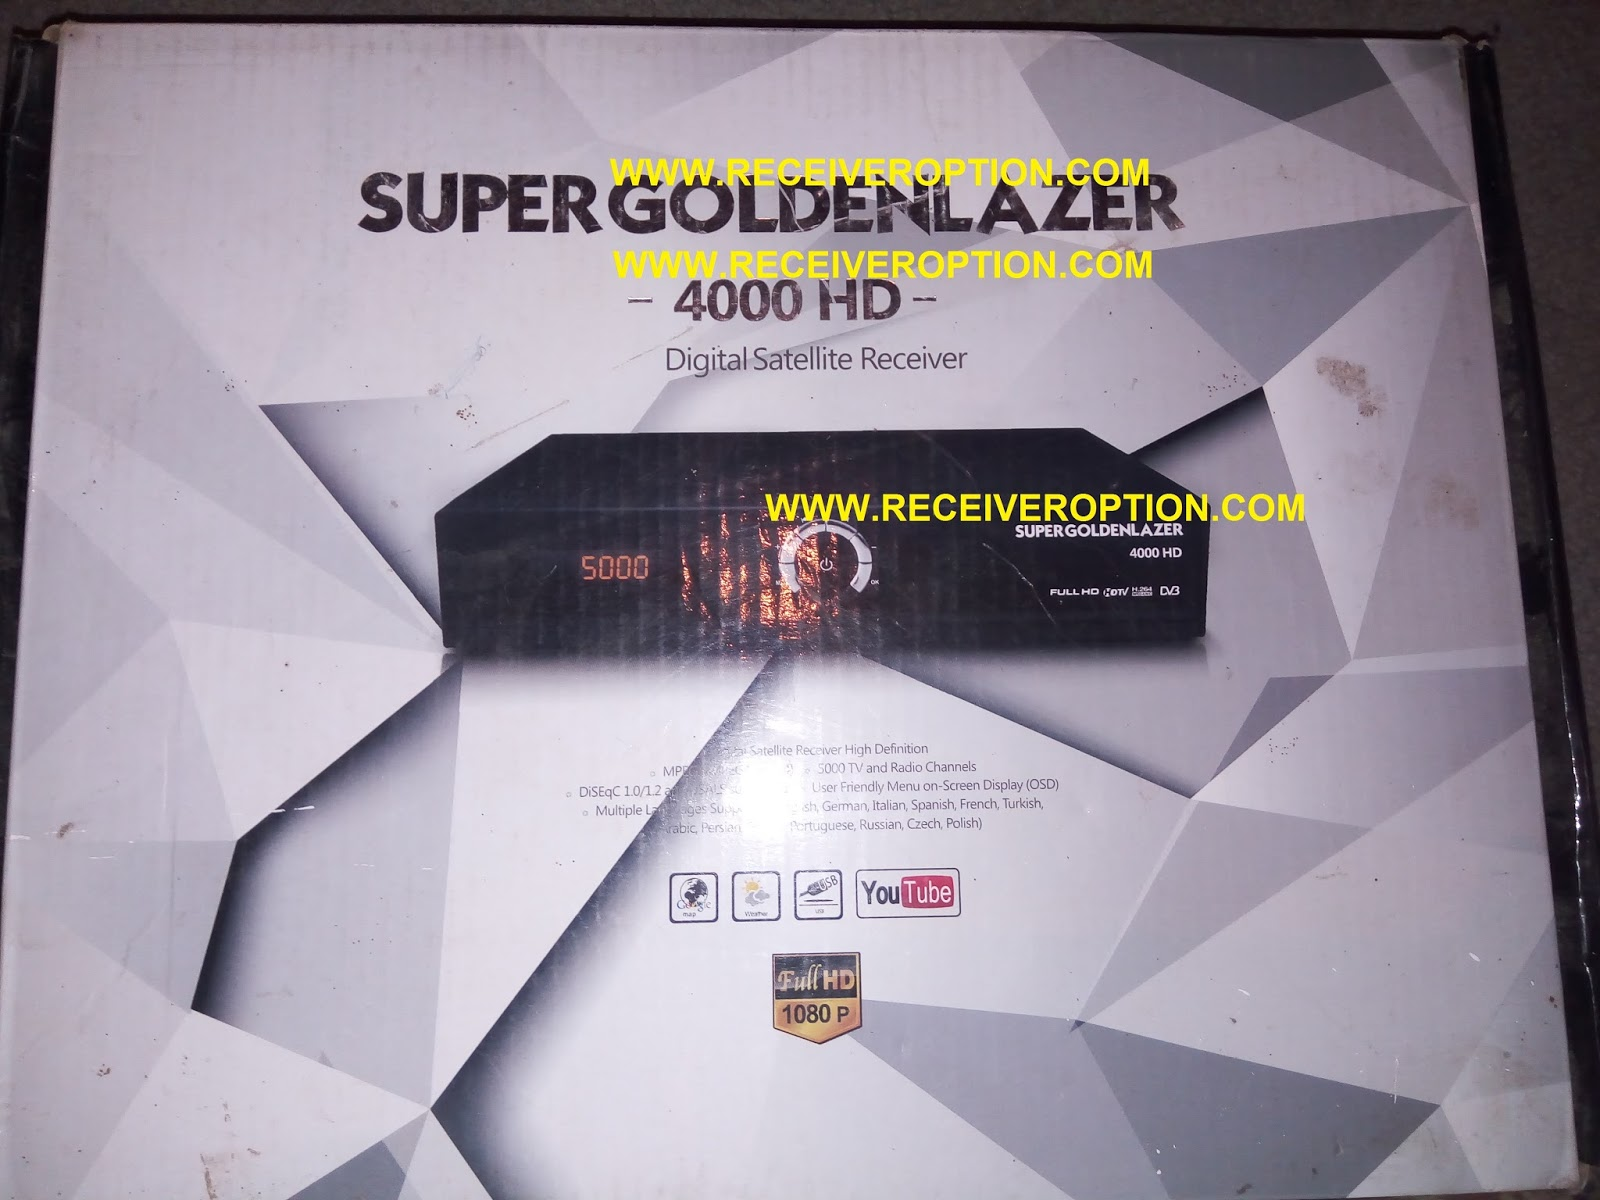 SUPER GOLDEN LAZER 4000 HD RECEIVER SOFTWARE - HOW TO ENTER